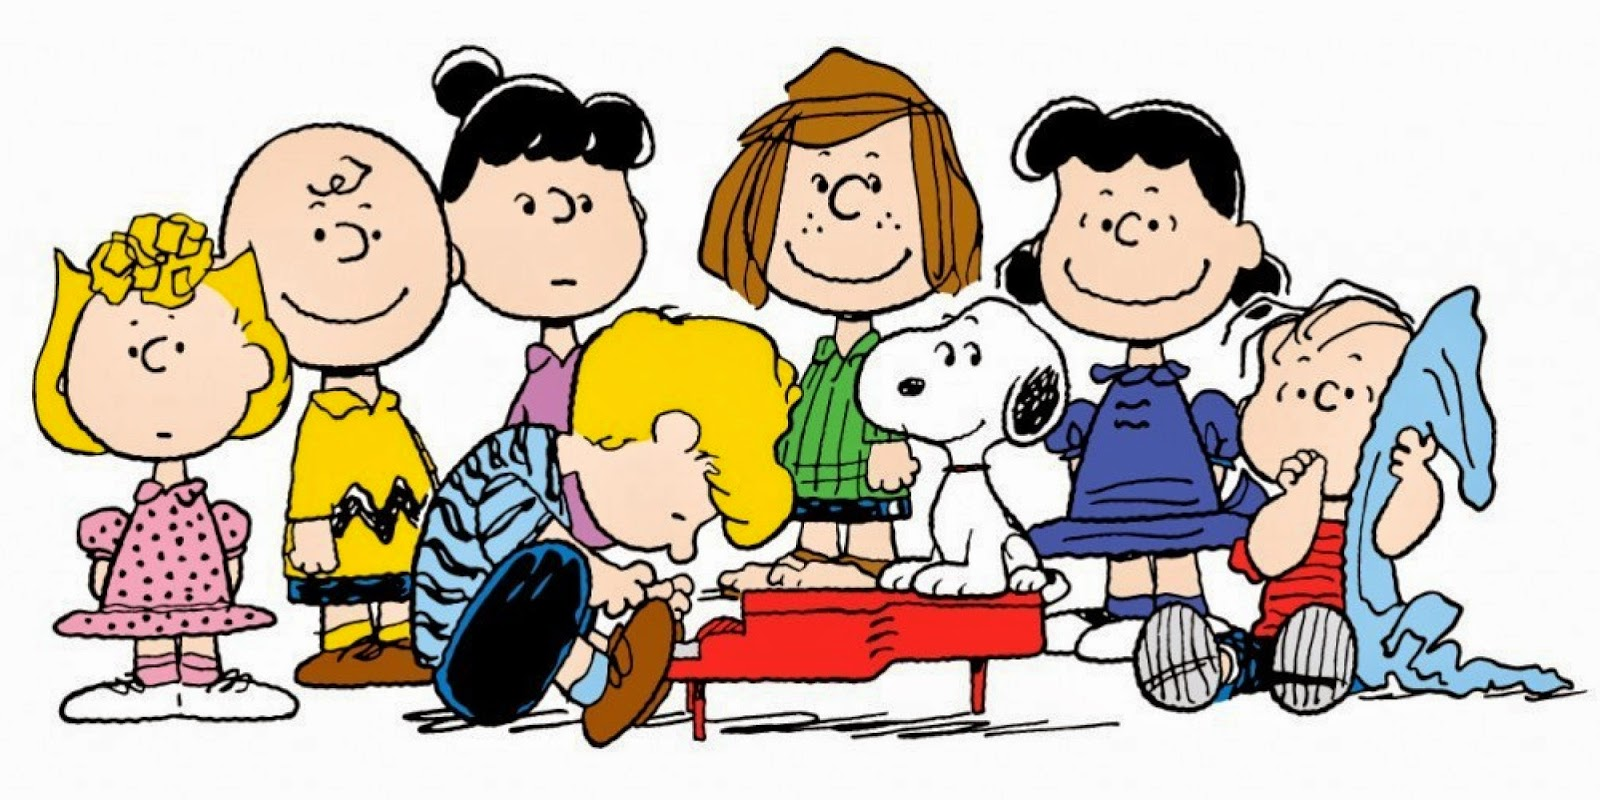 Clipart peanuts characters.